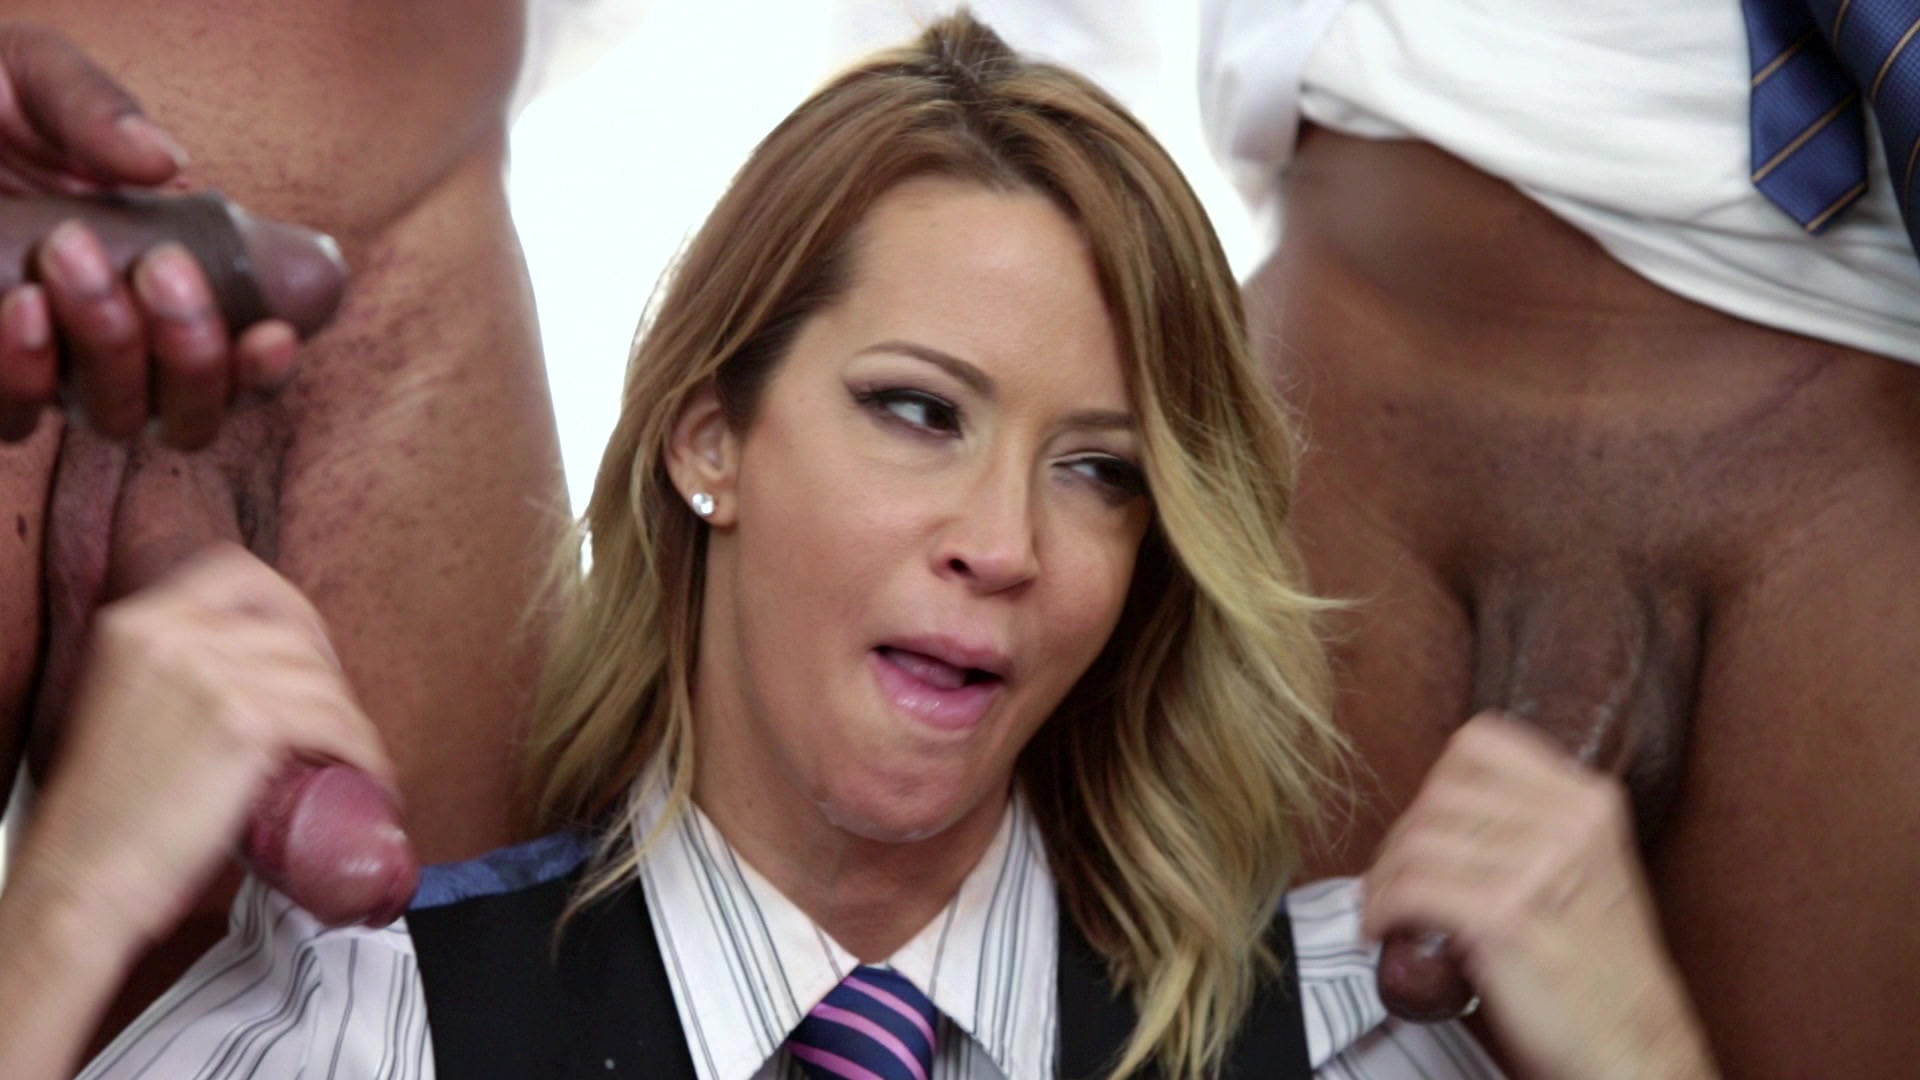 Jessica drake first anal sex seems